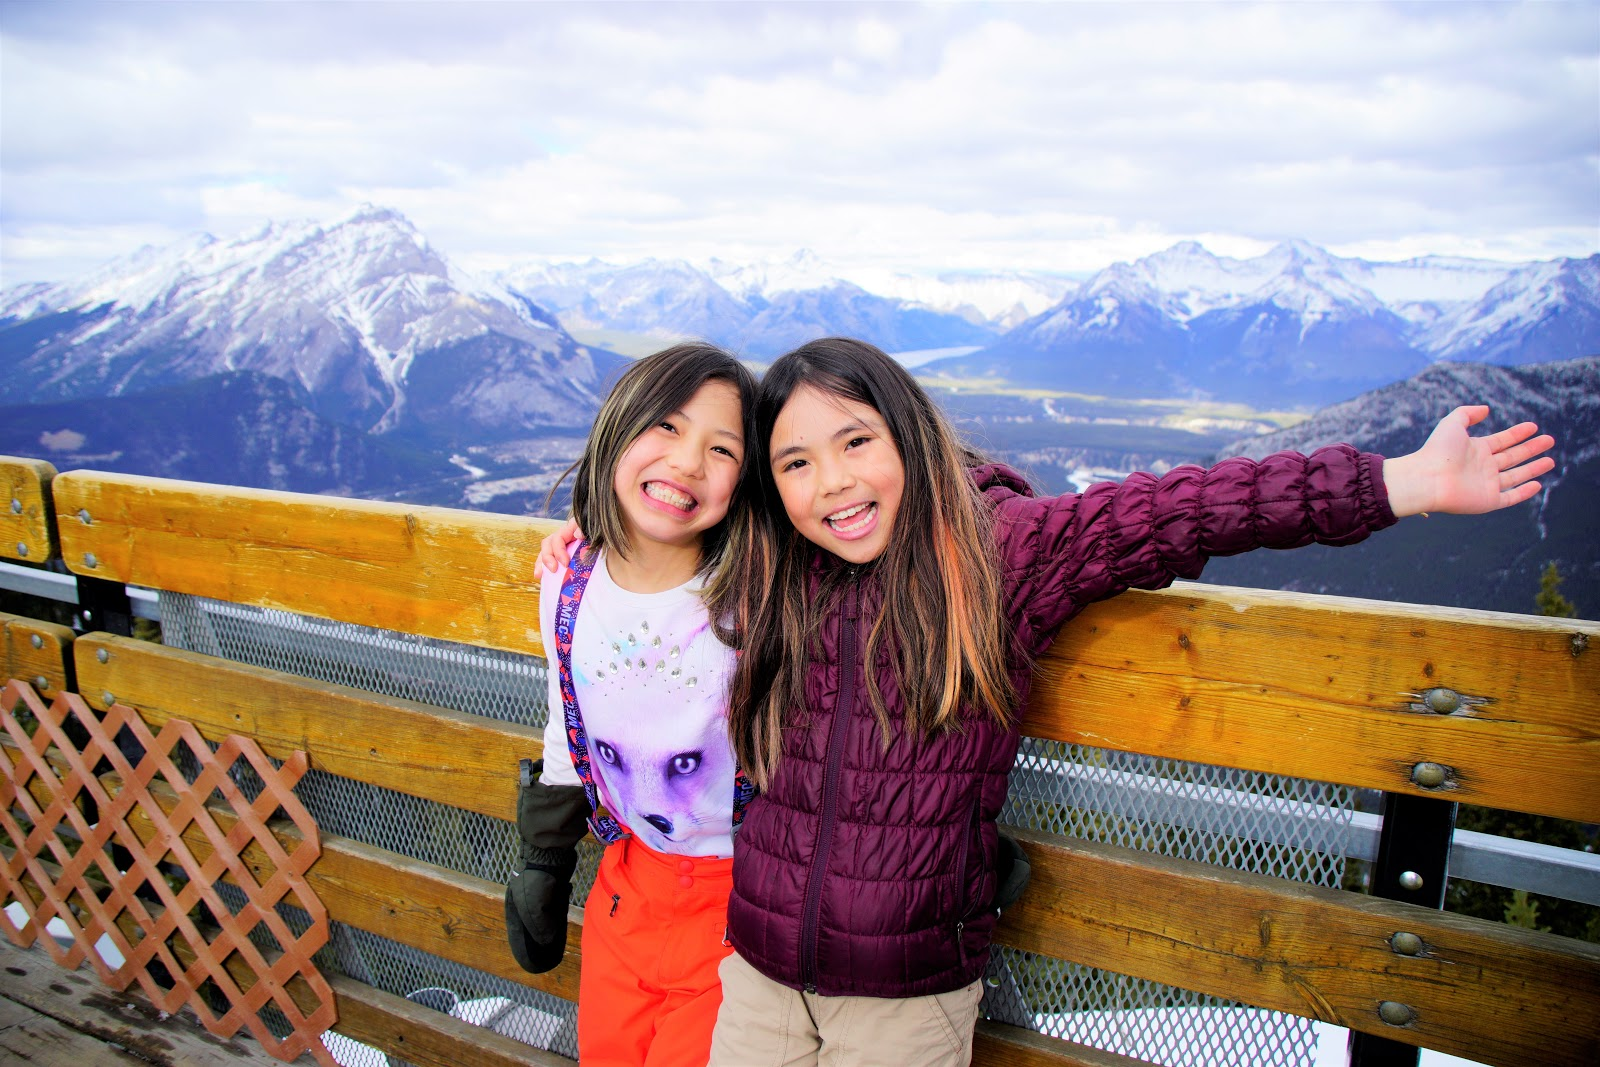 At the top of Sulphur Mountain / Banff Gondola